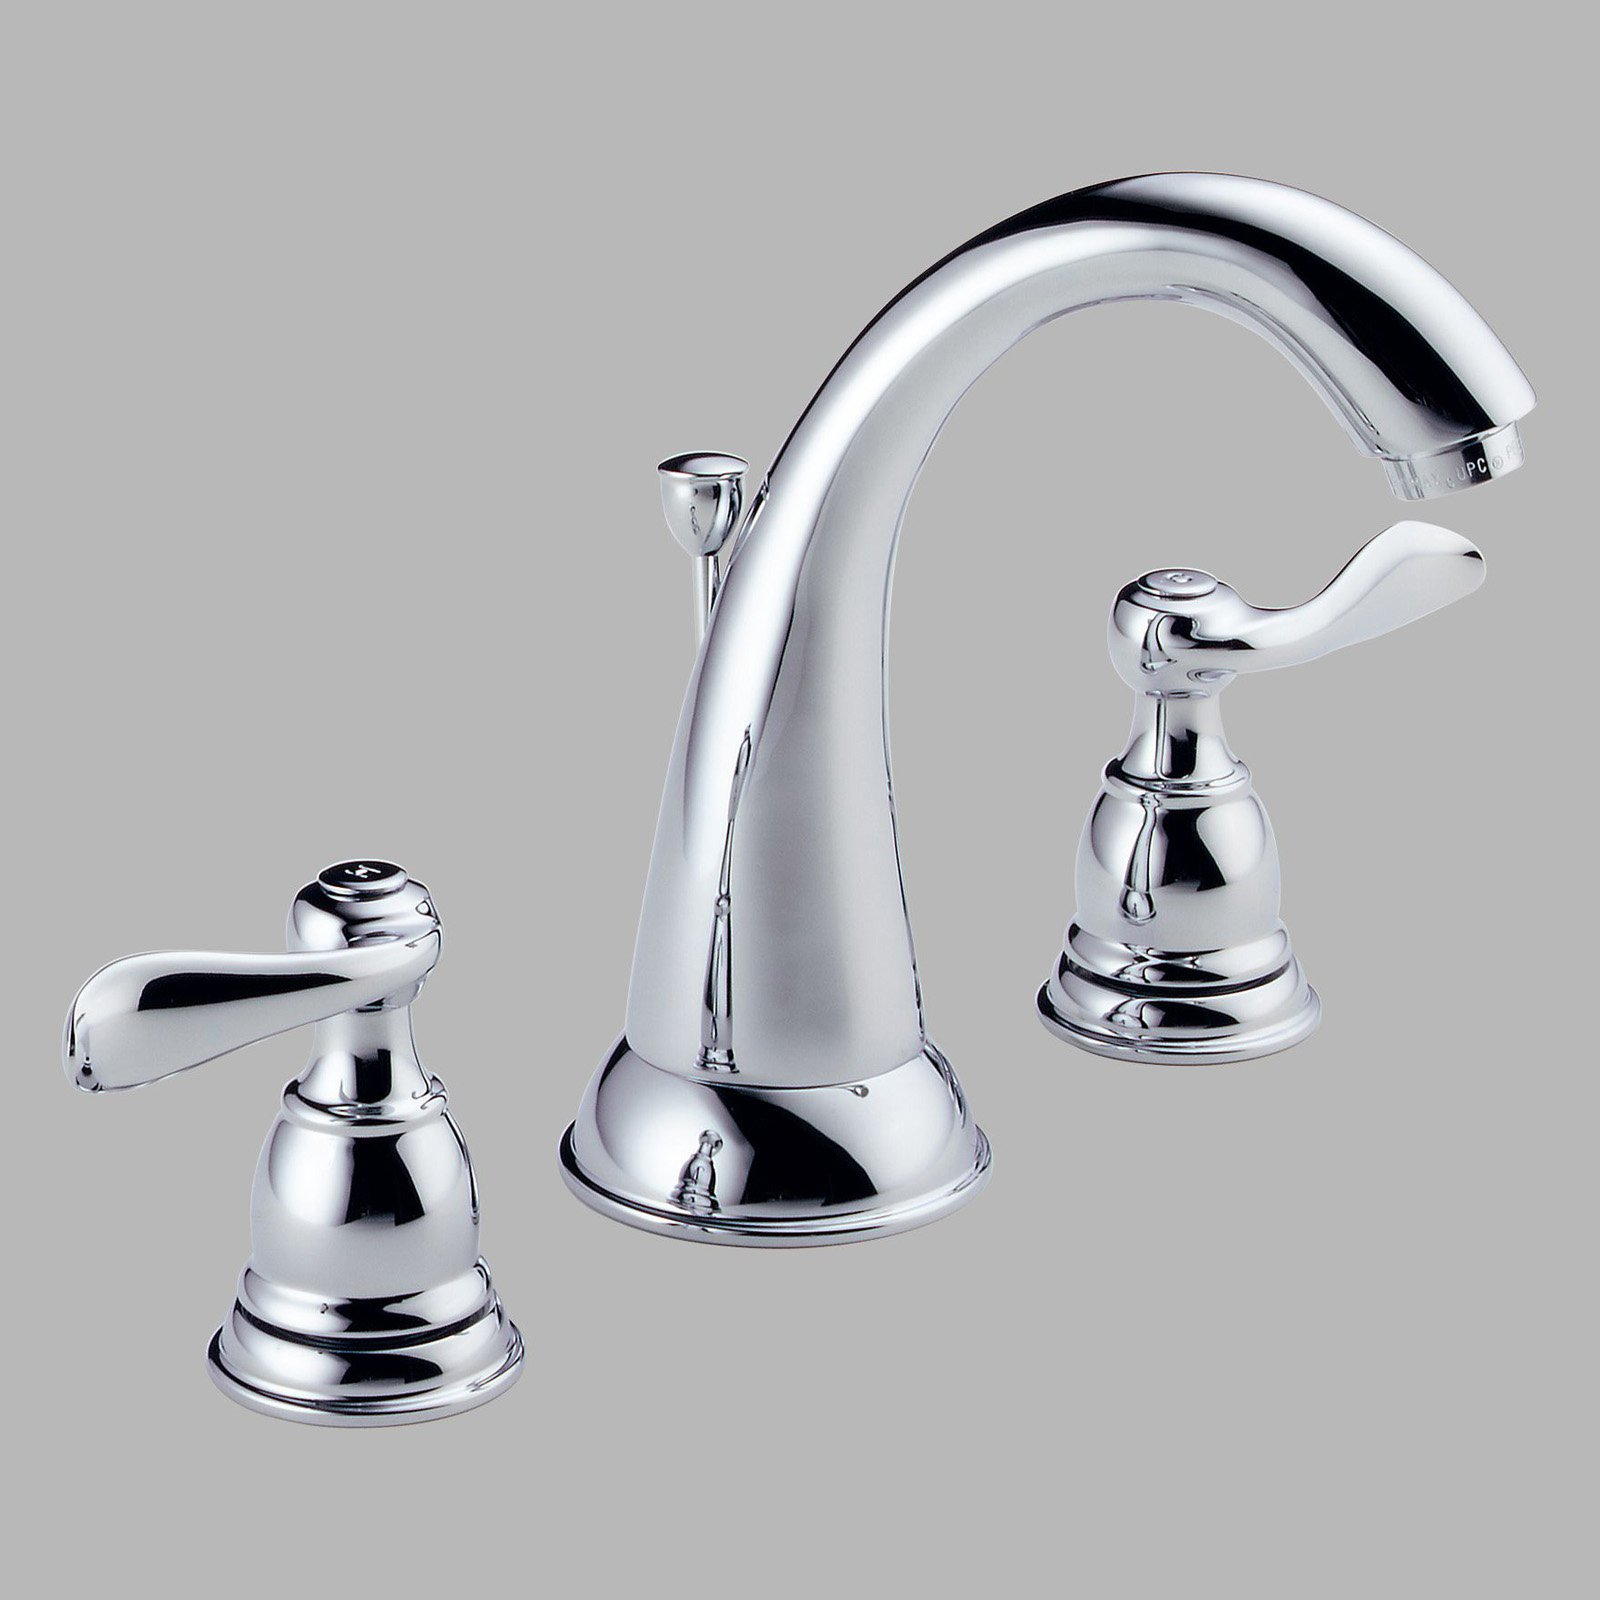 windemere hand chrome and tub trim delta faucet shower rb stainless customer jpg valve linden kits ss with bronze bathtub roman faucets venetian v